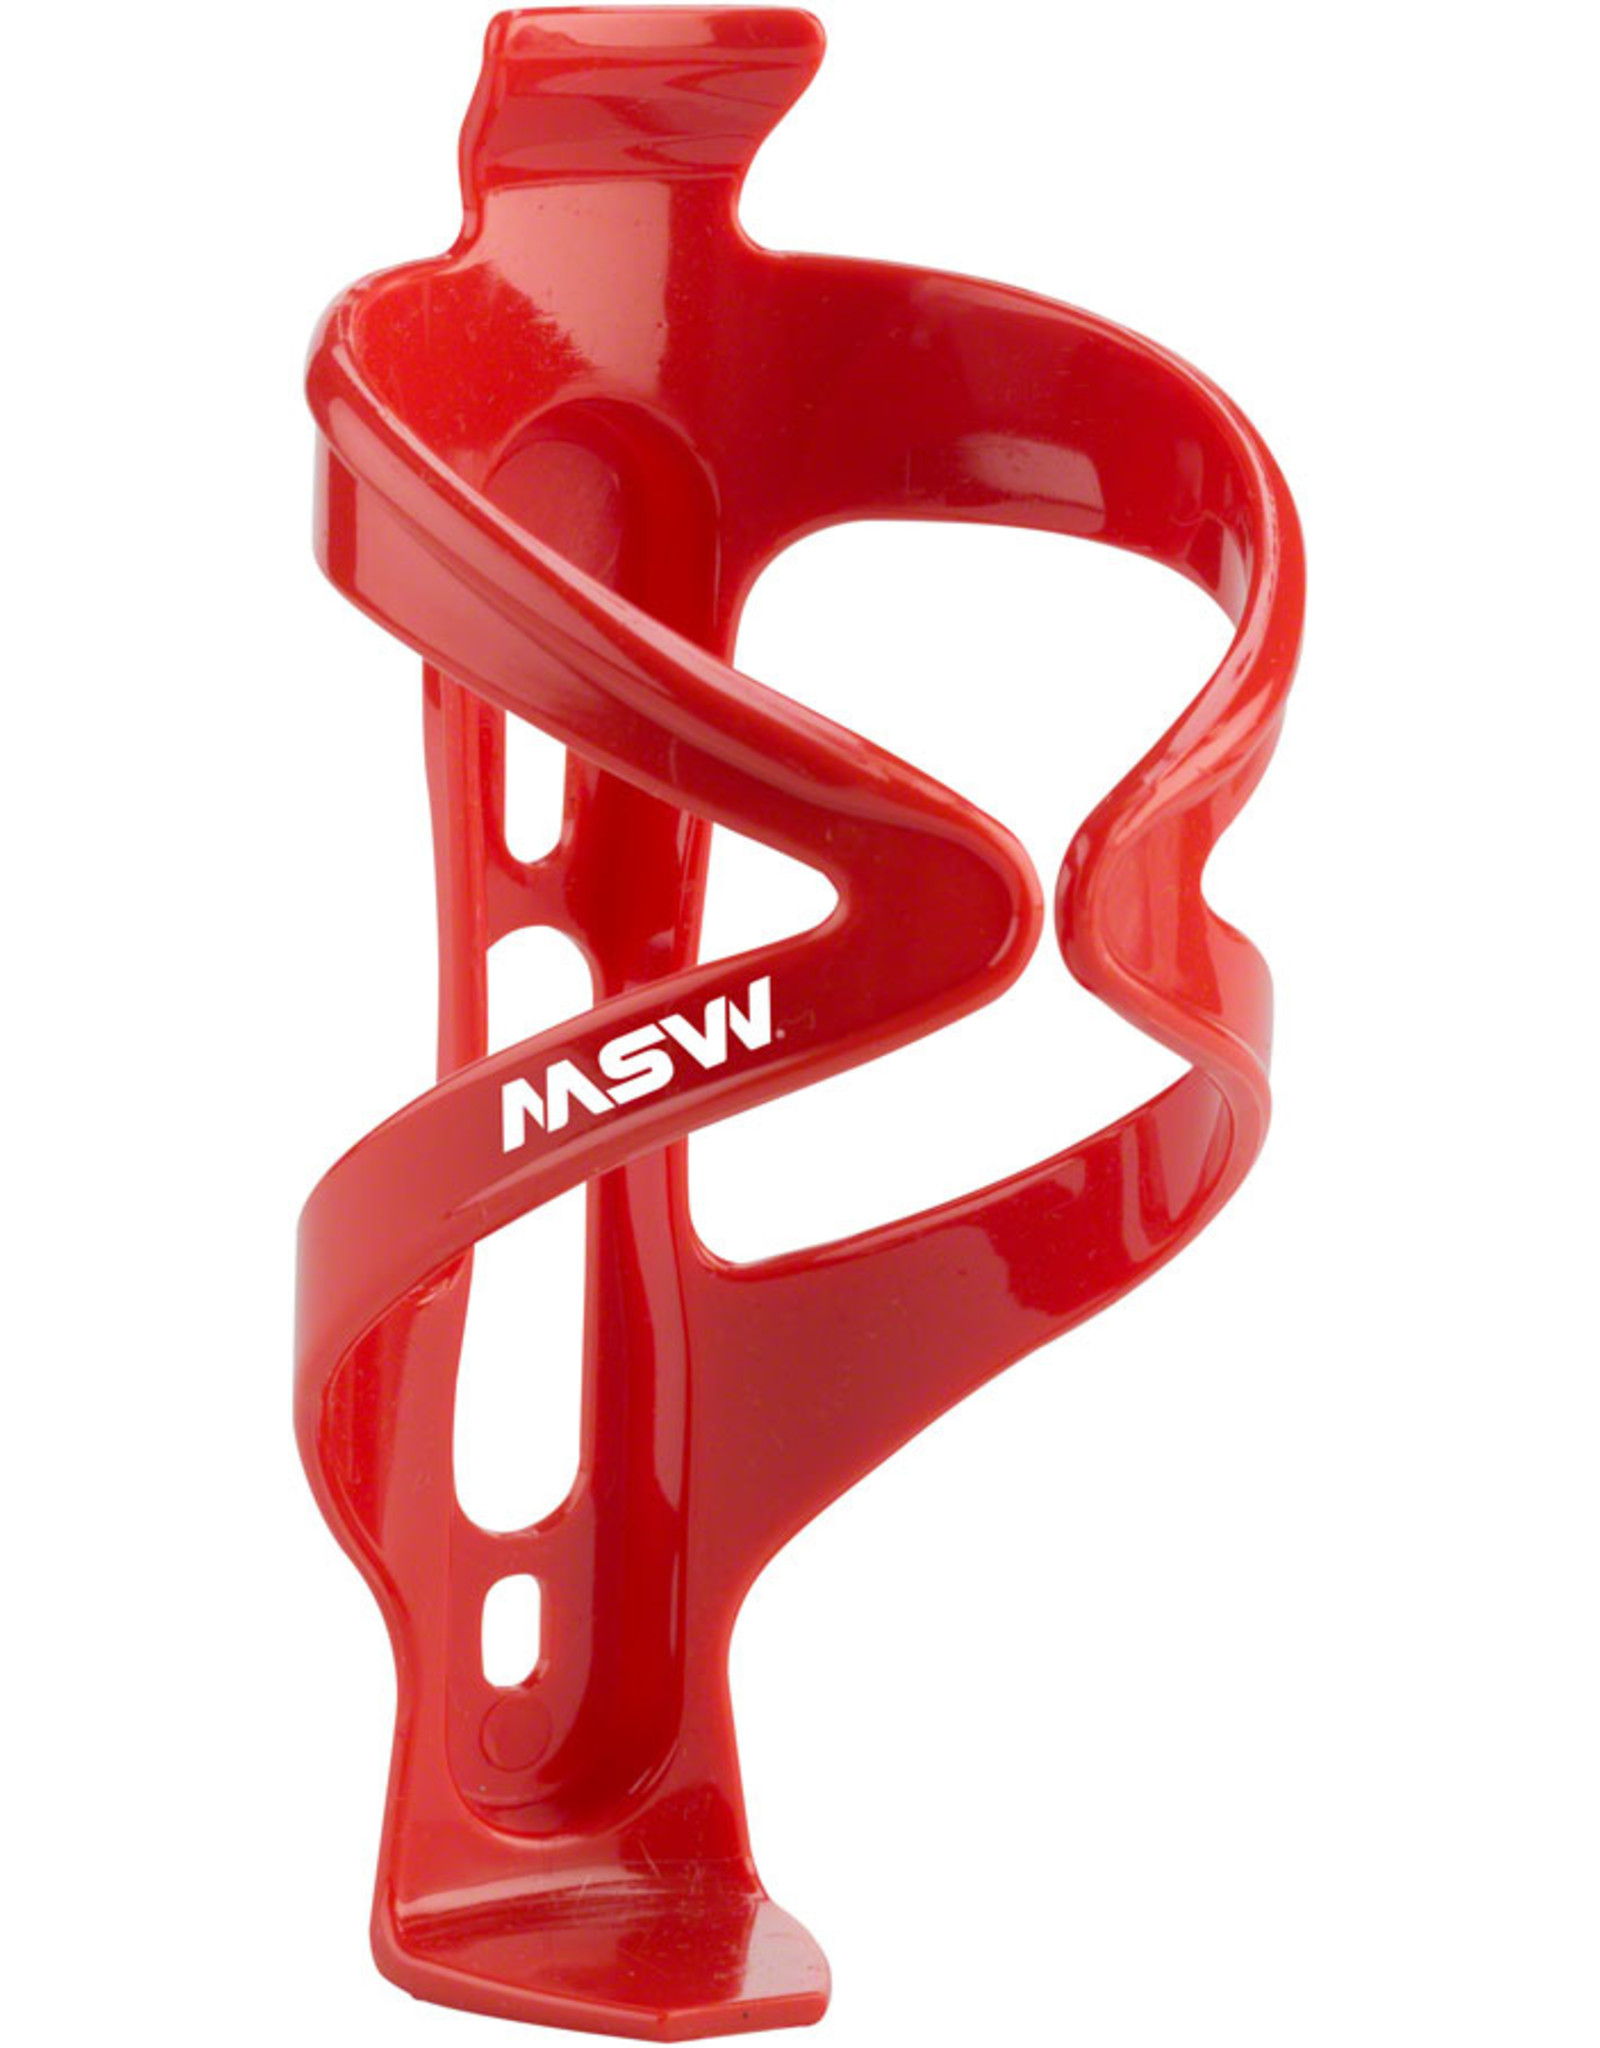 MSW PC-150 bottle cage